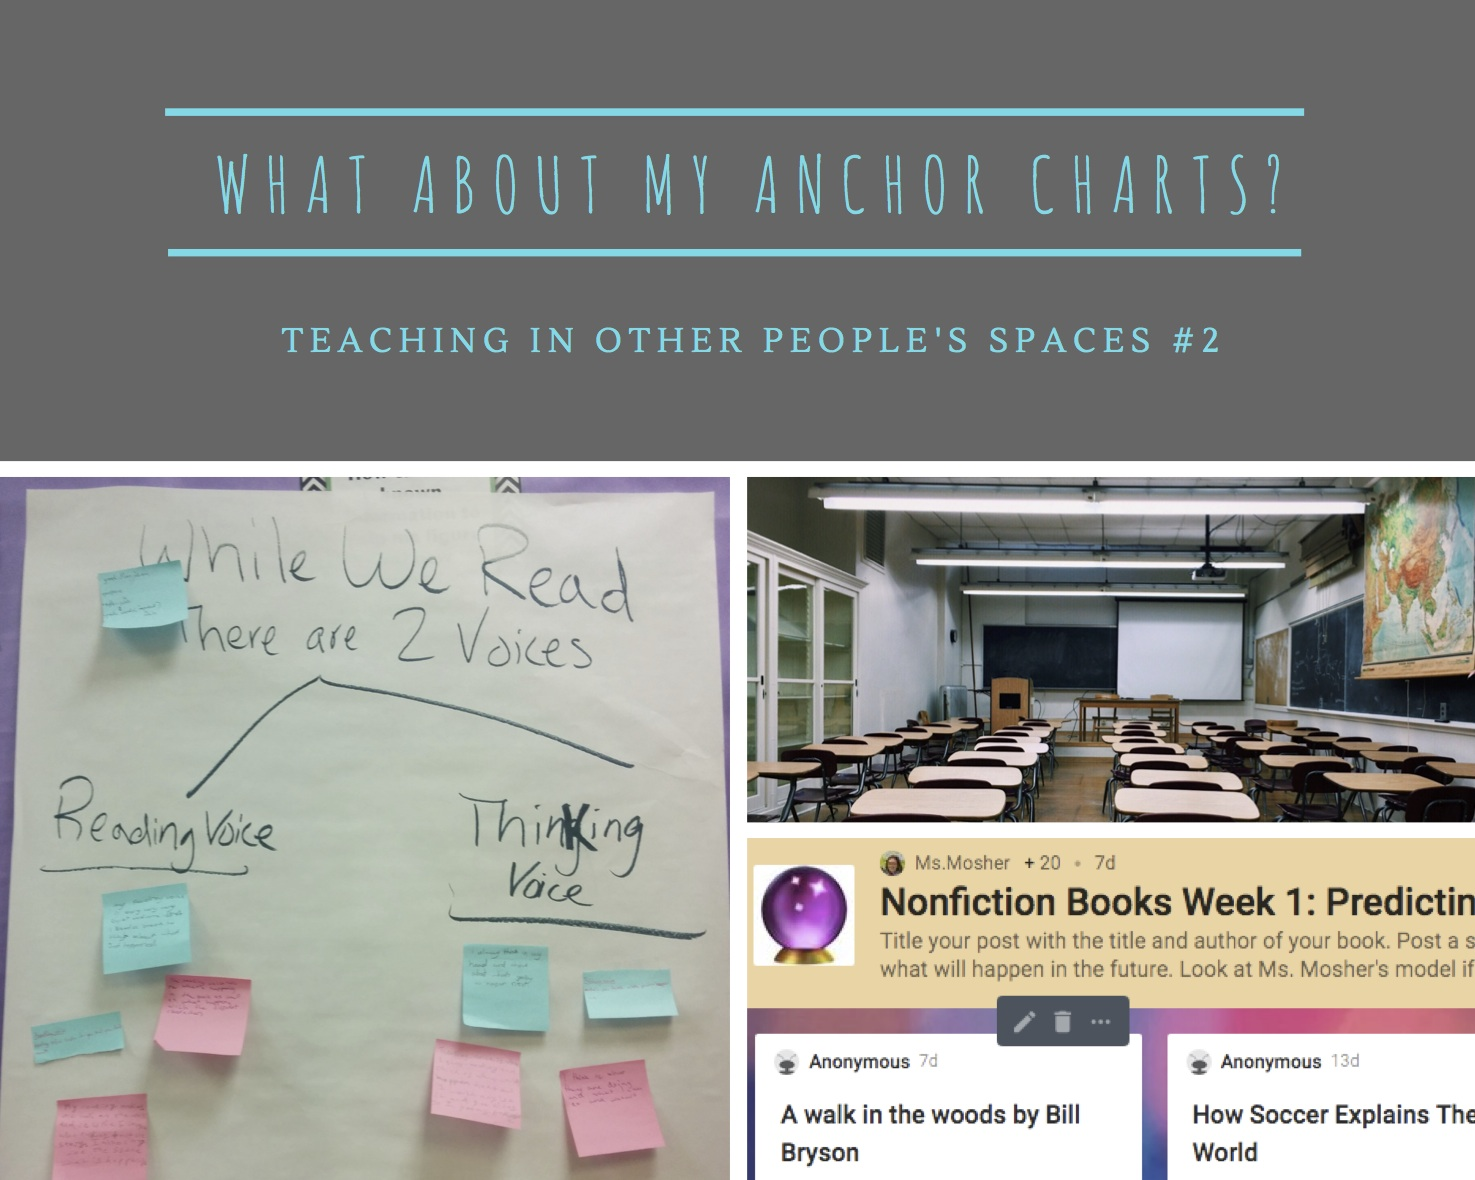 Where Have My Anchor Charts gone-